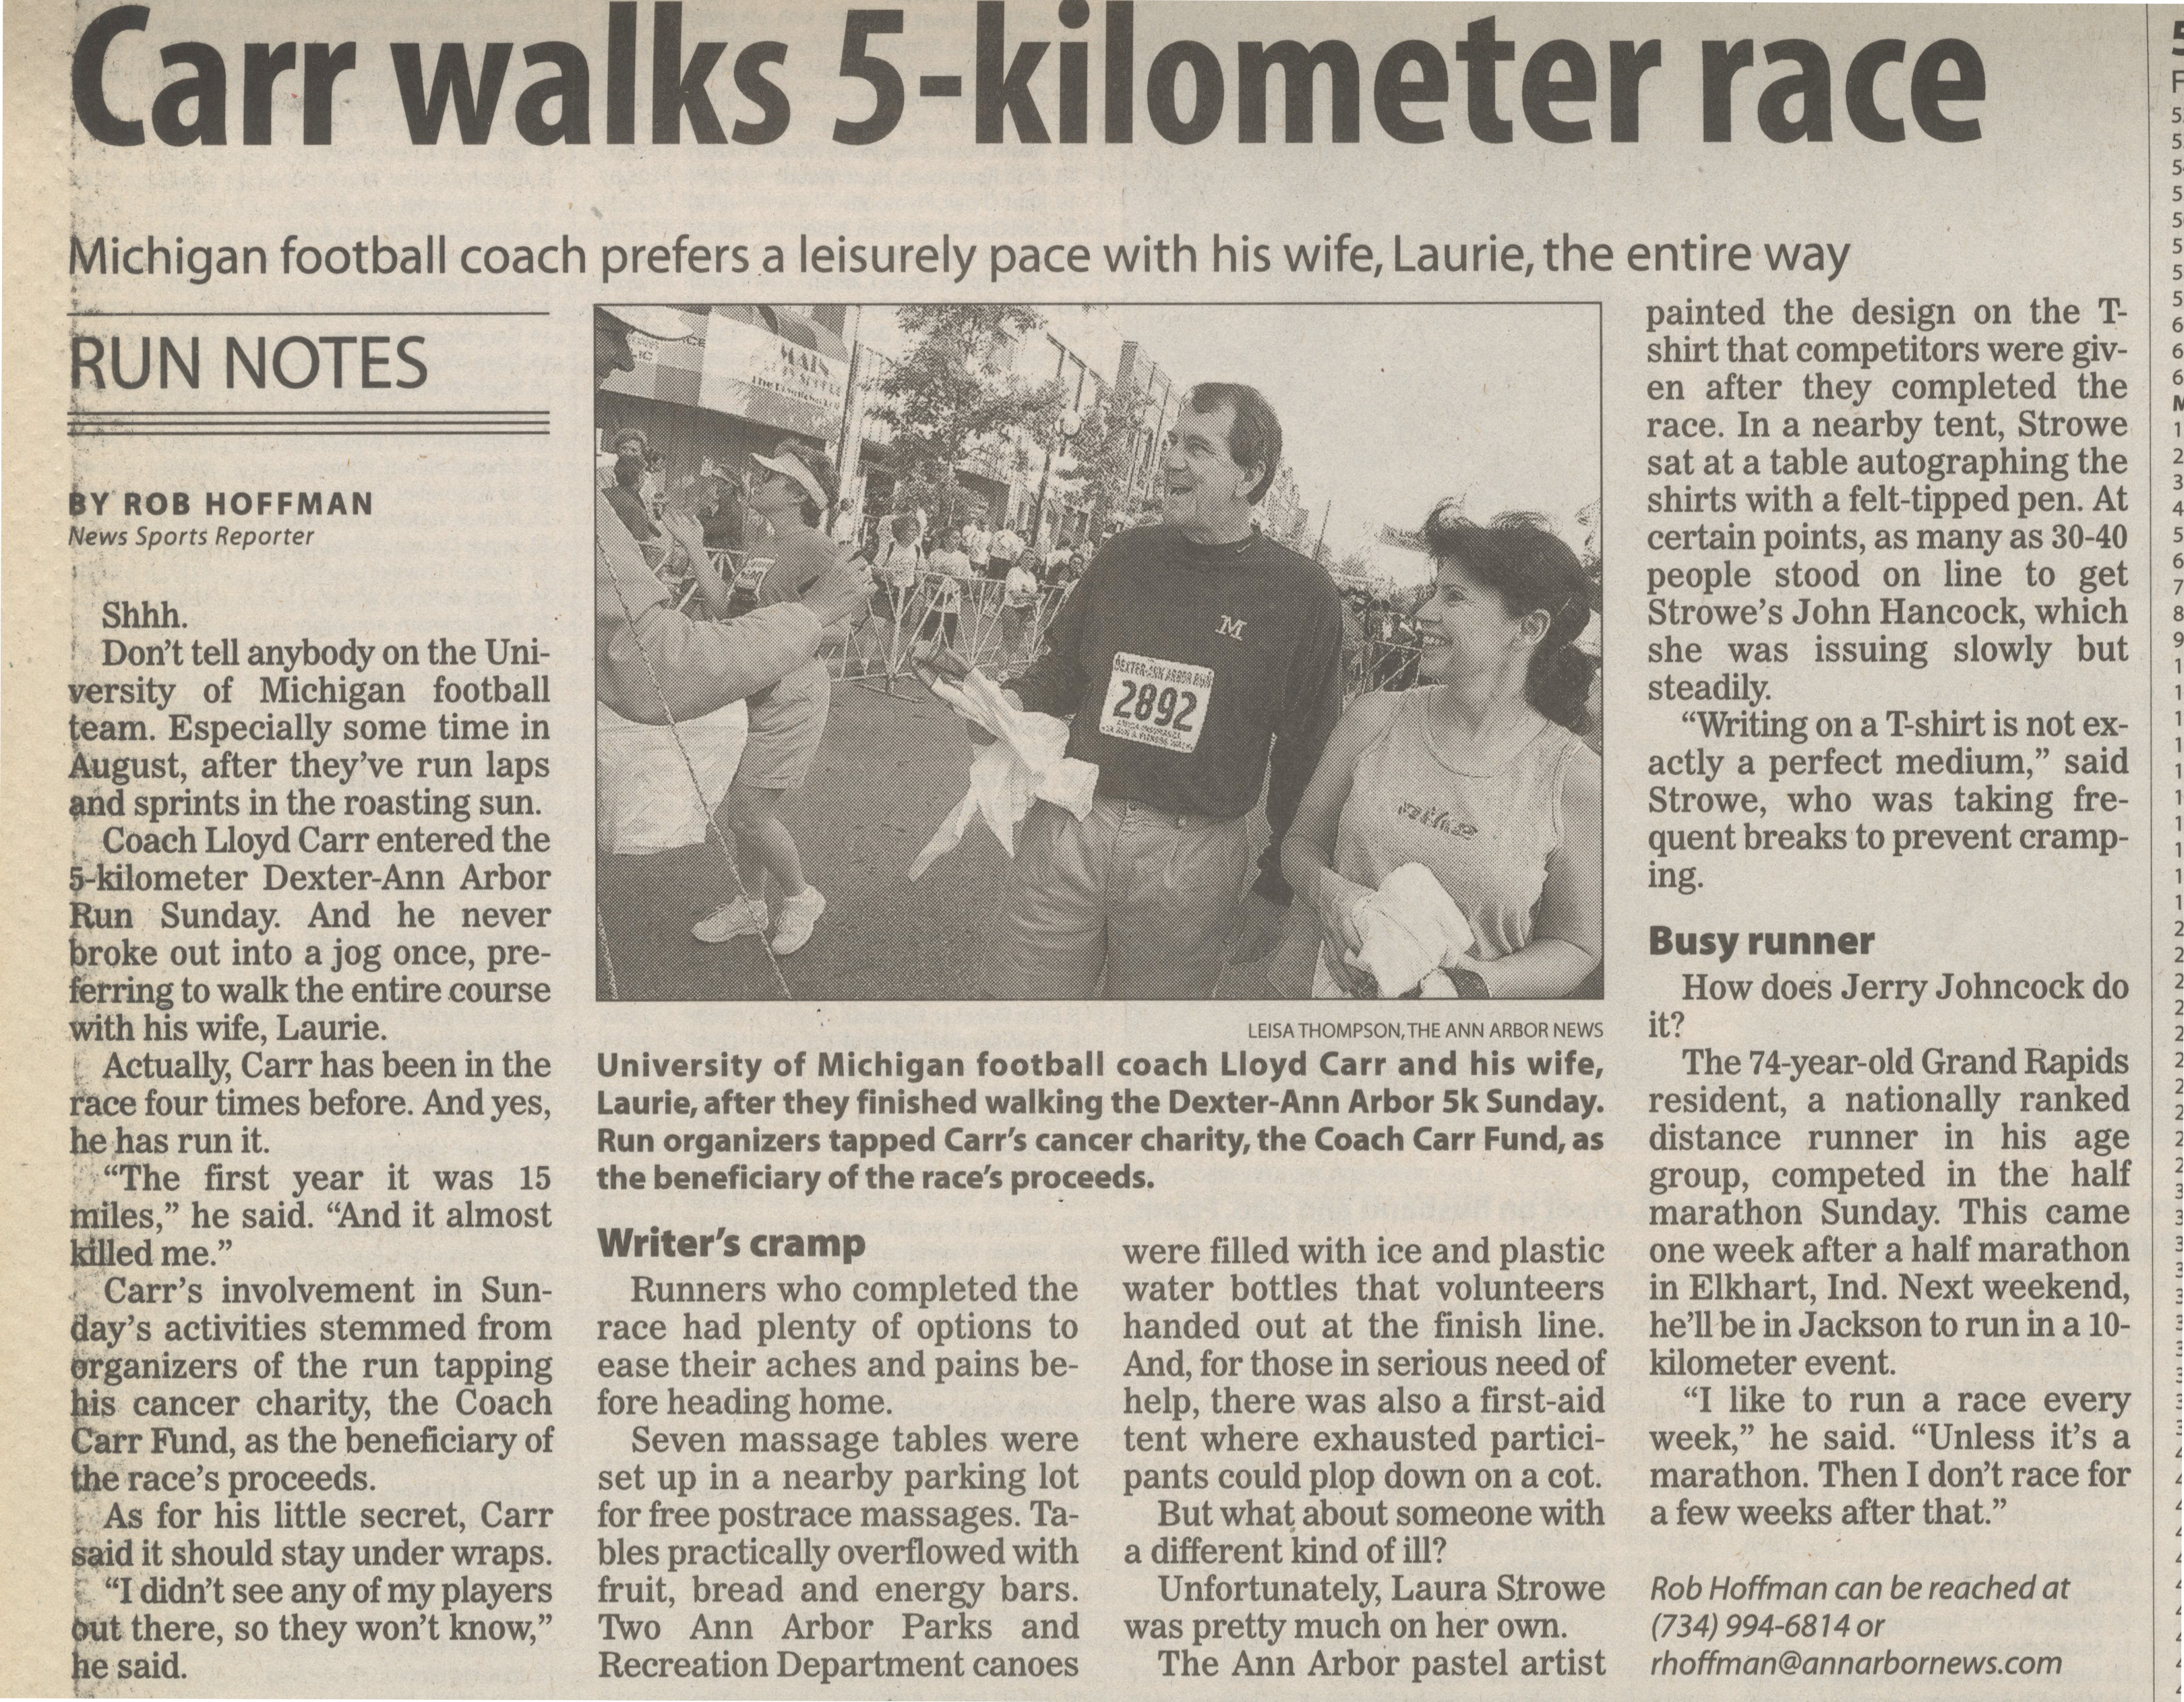 Carr walks 5-kilometer race image